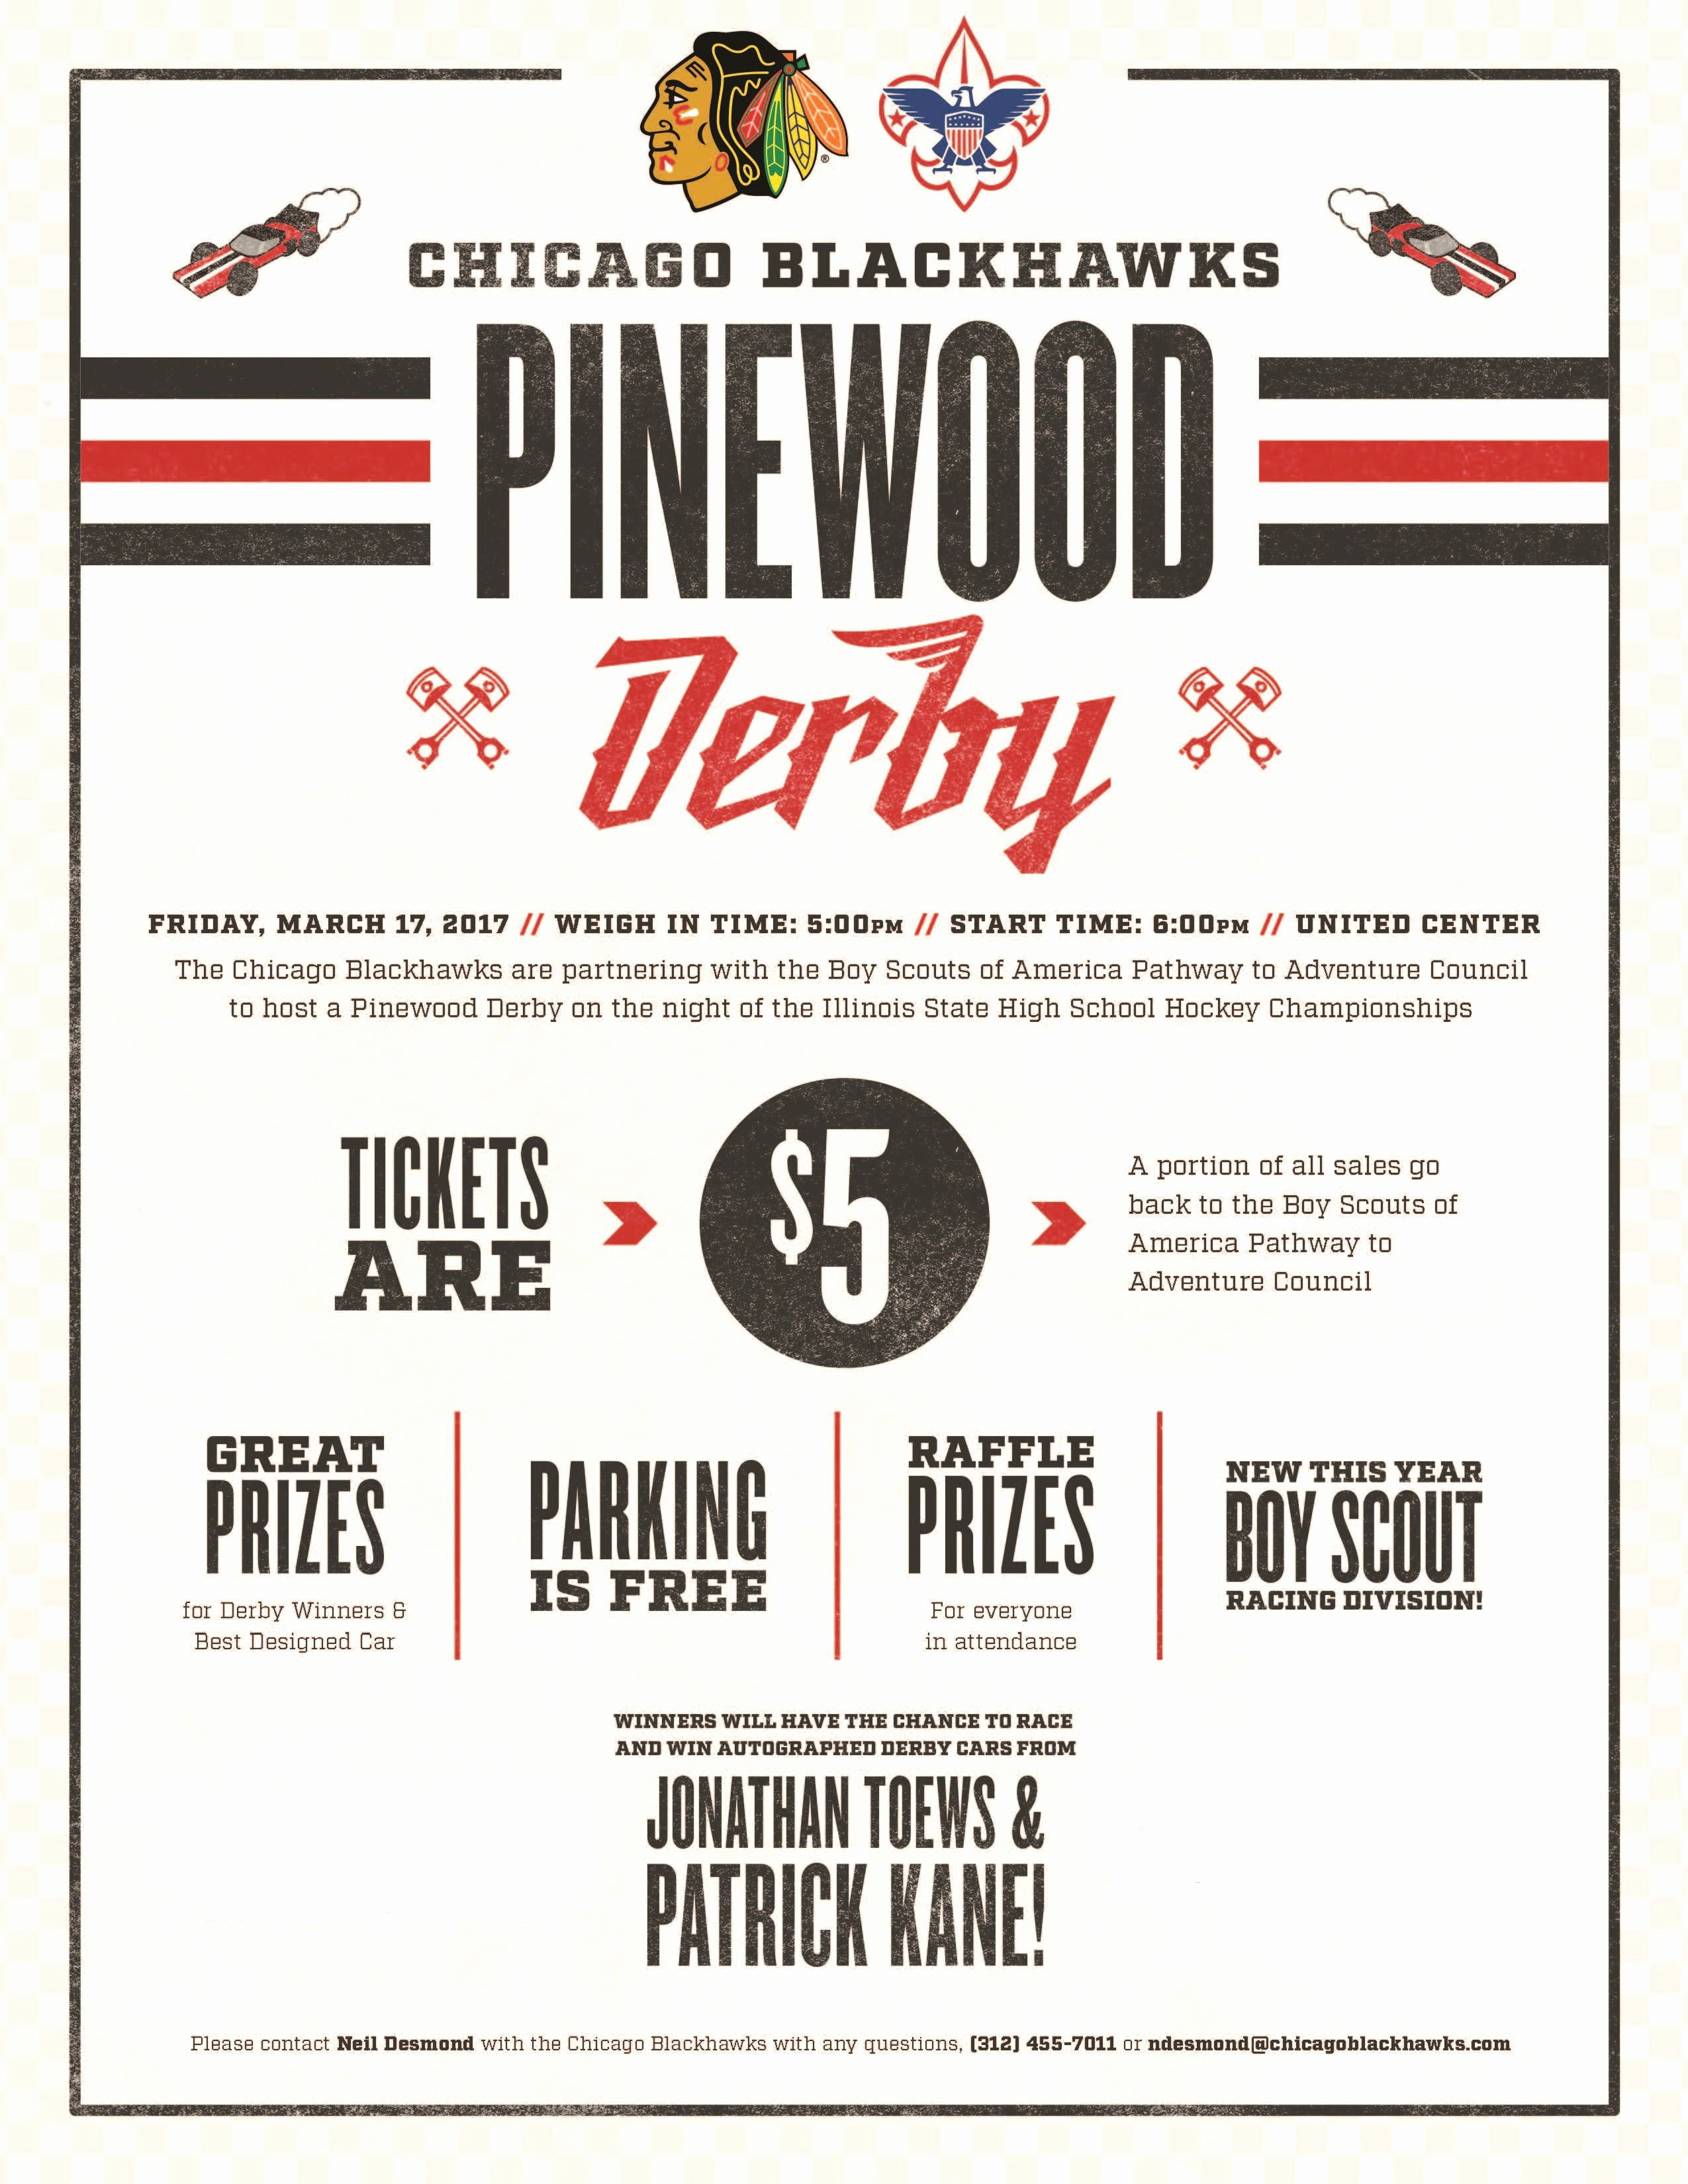 Pinewood Derby Flyer Template Elegant Pathway to Adventure Council Chicago Blackhawks Pinewood